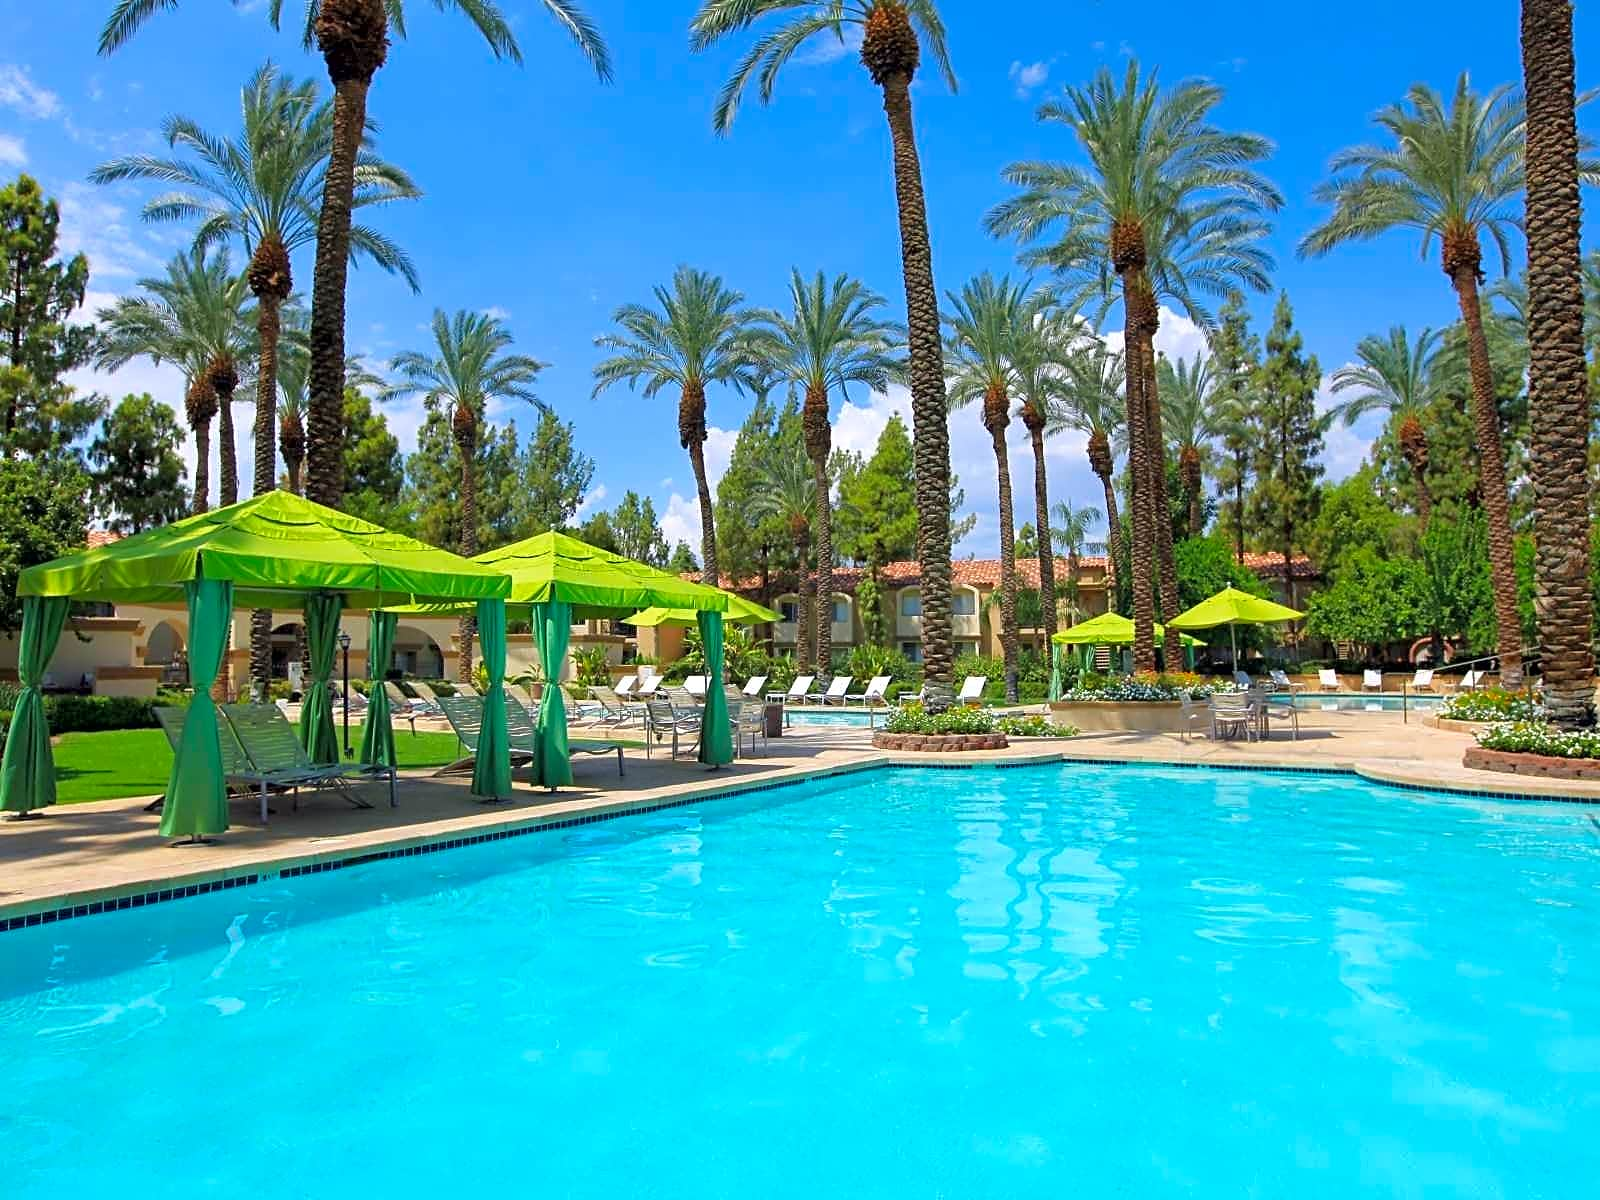 The Regent Palm Desert Apartment Homes for rent in Palm Desert